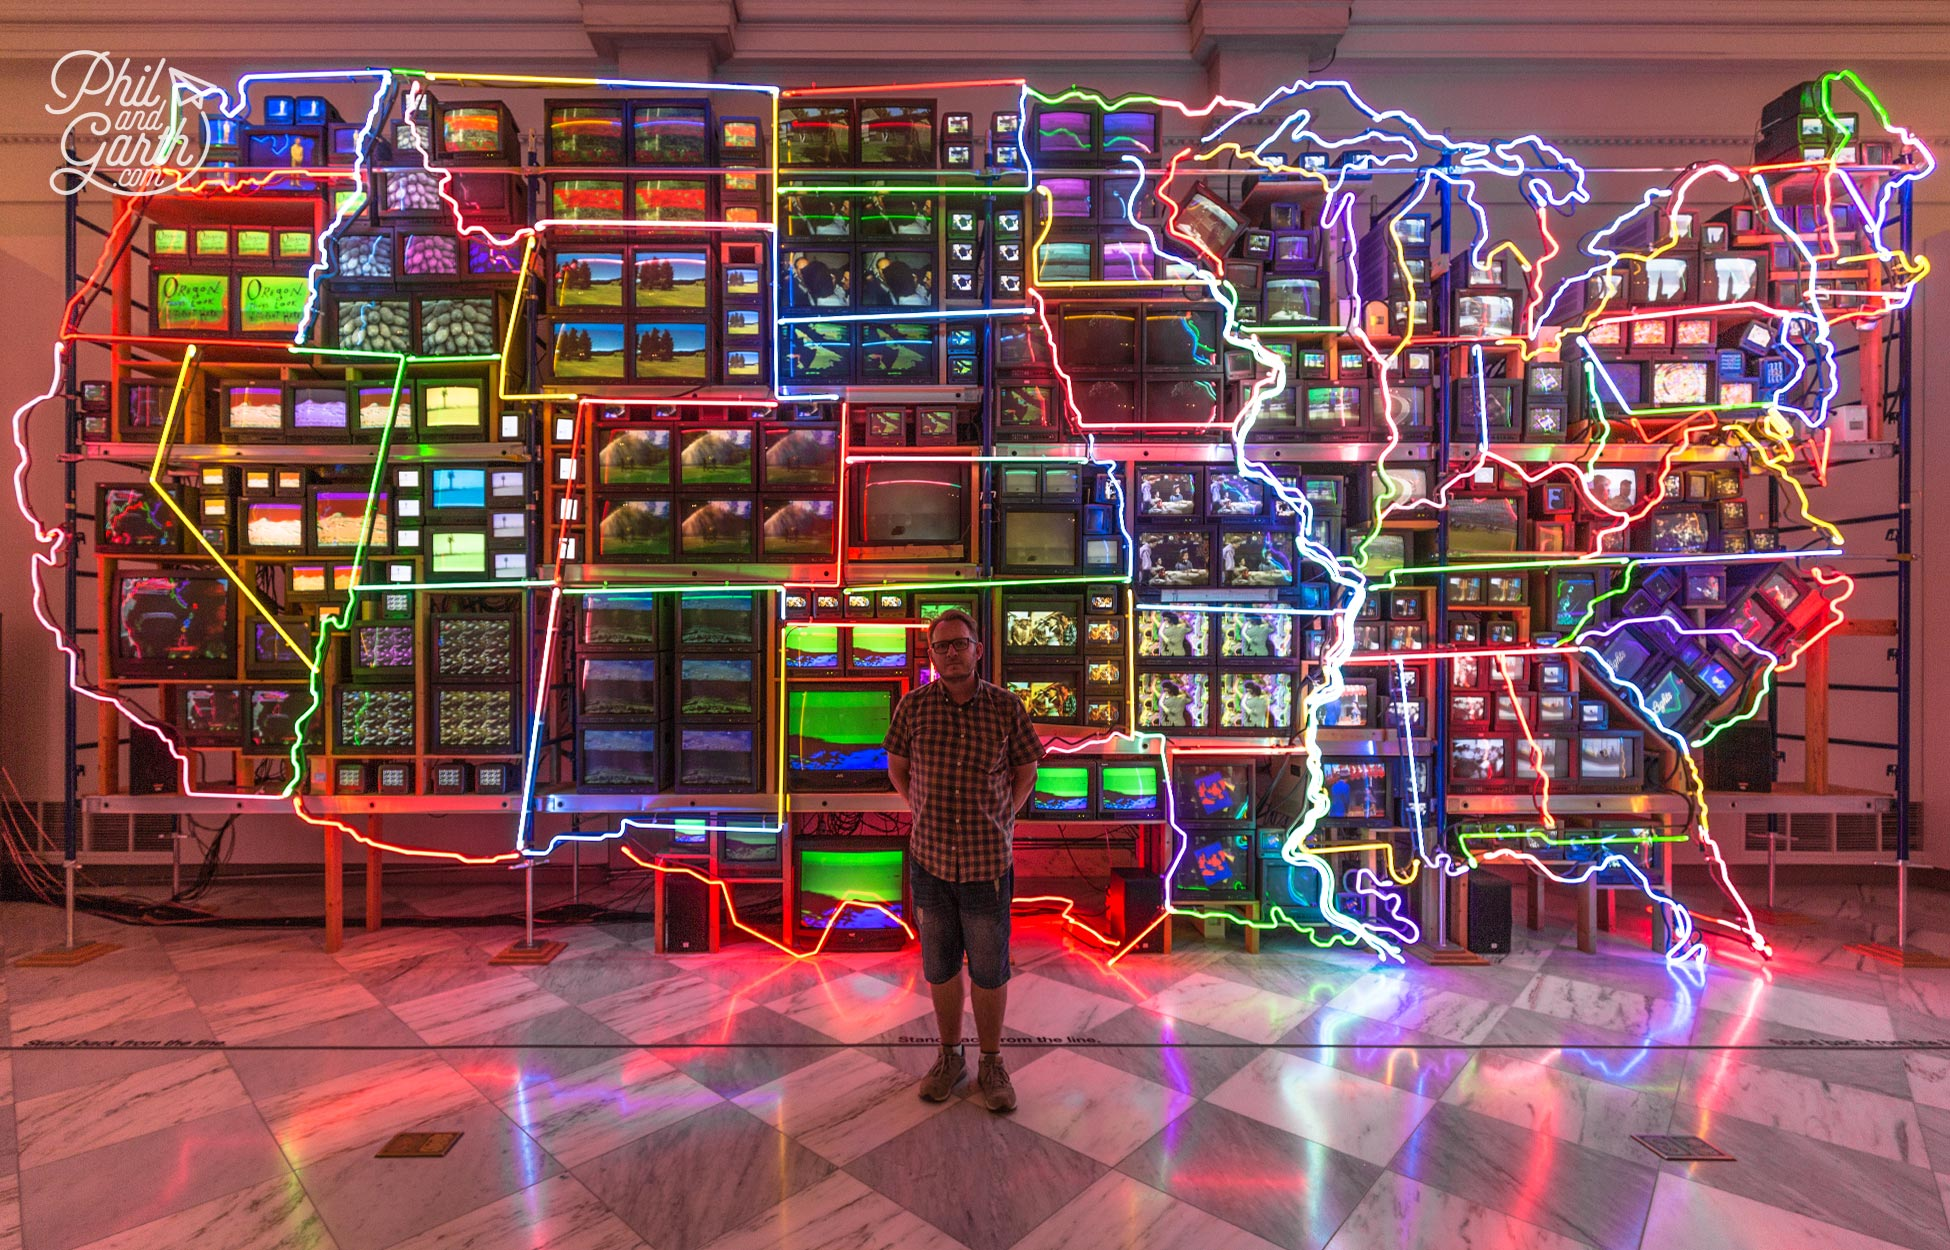 """Garth in front of the """"Electronic Superhighway: Continental U.S., Alaska, Hawaii"""" video installation"""